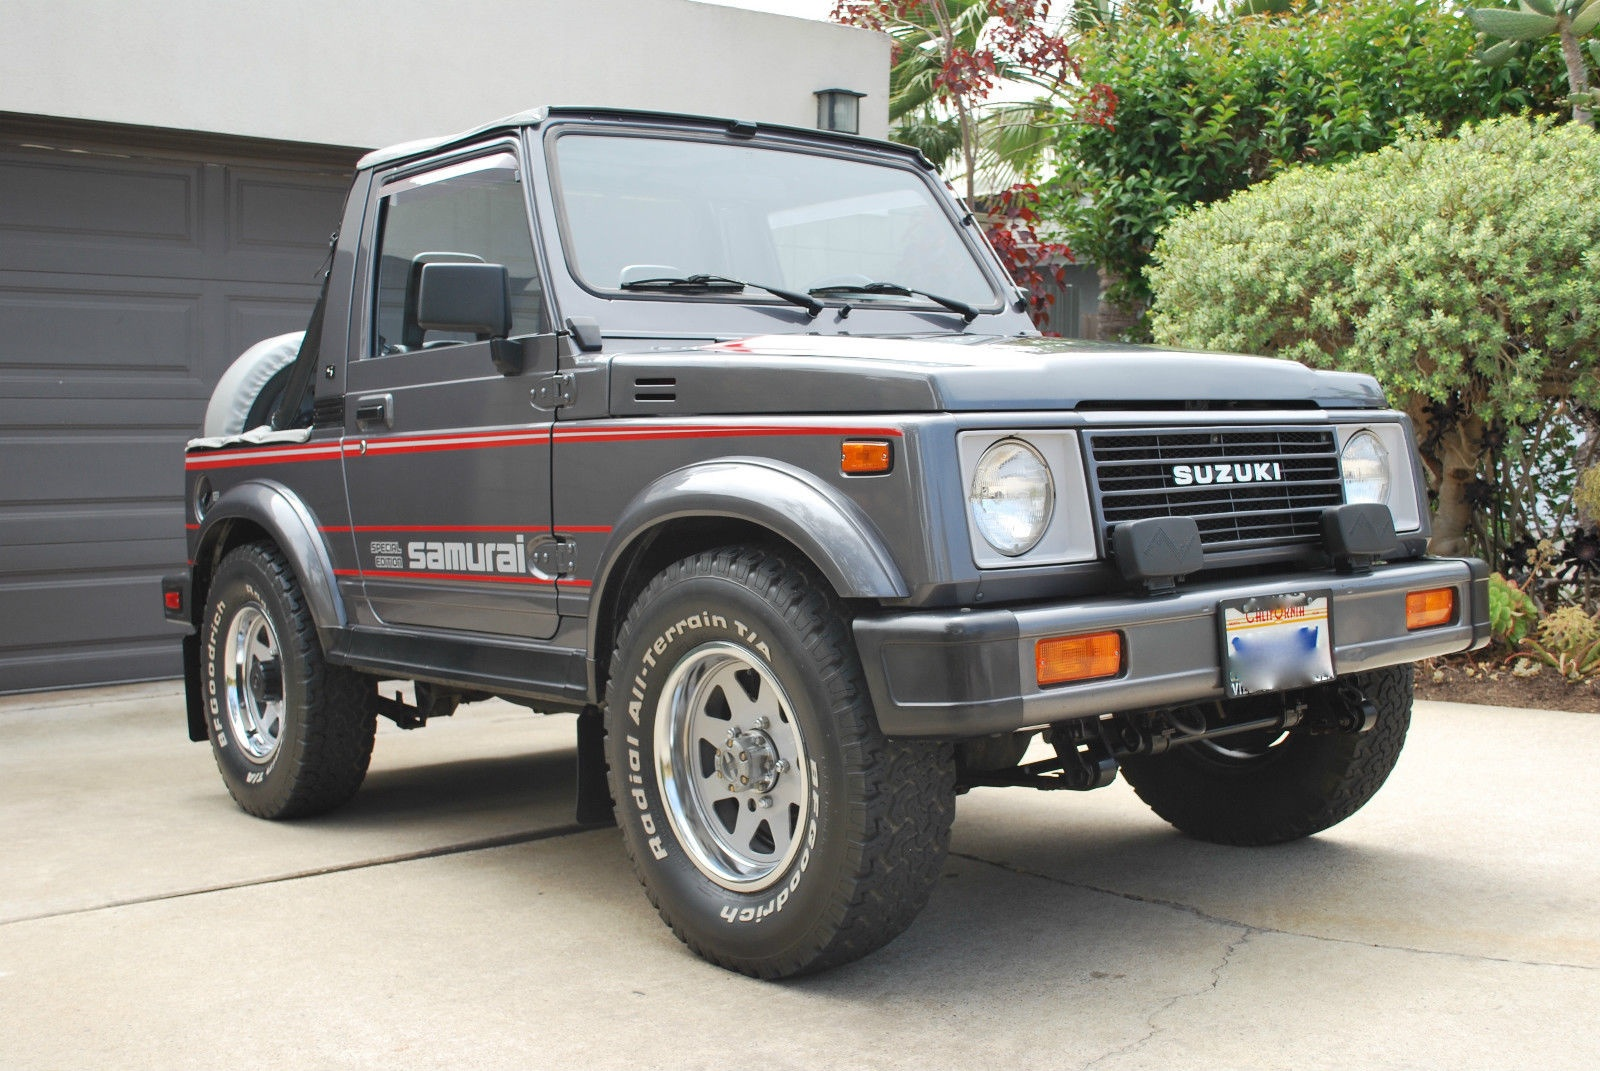 trail tested time machine 1987 suzuki samurai jx se. Black Bedroom Furniture Sets. Home Design Ideas